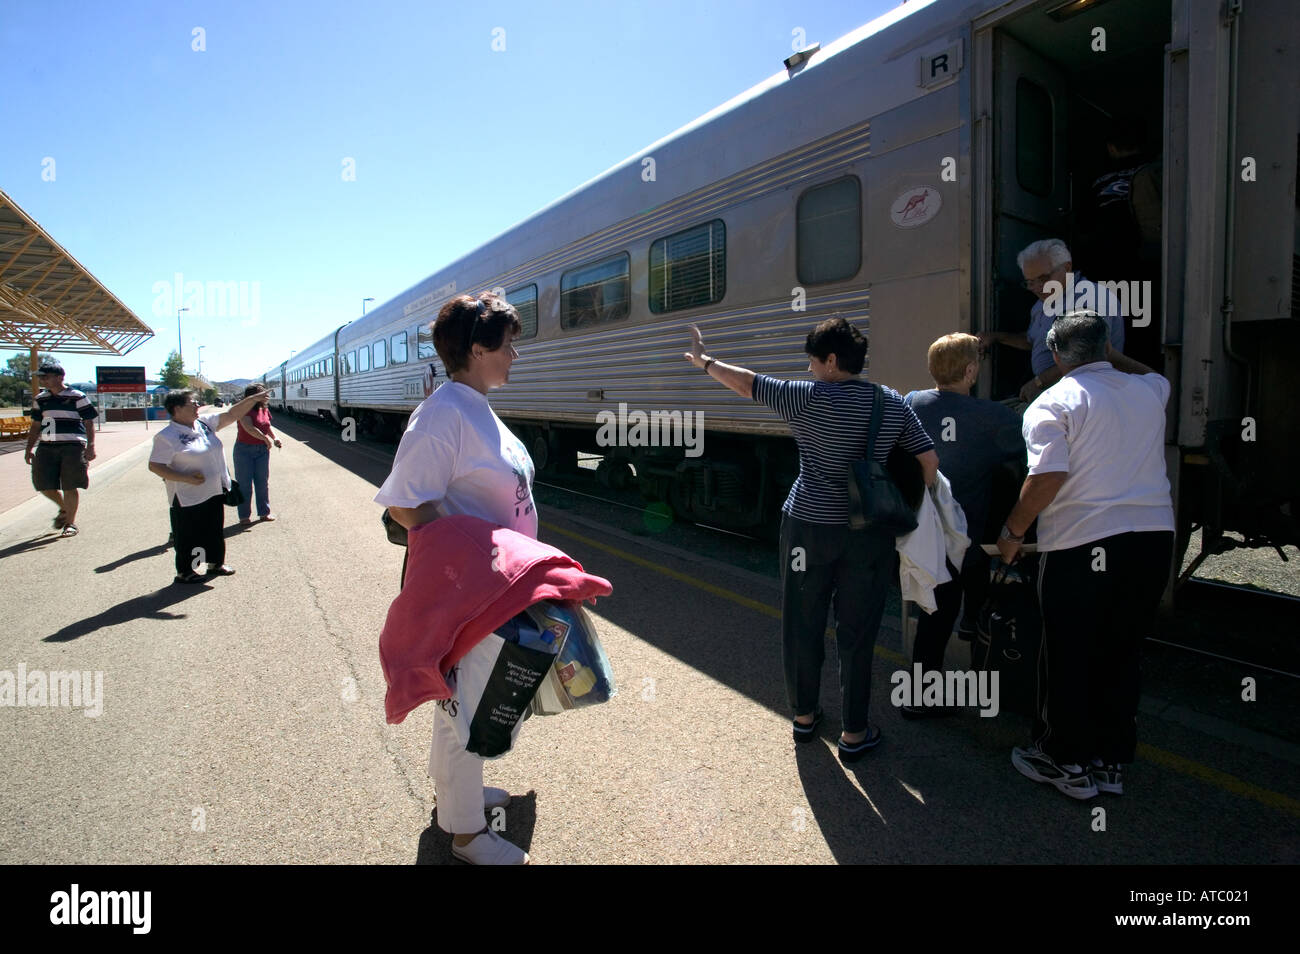 Passengers get ready to depart on board the Ghan train in Katherine station in outback Australia - Stock Image